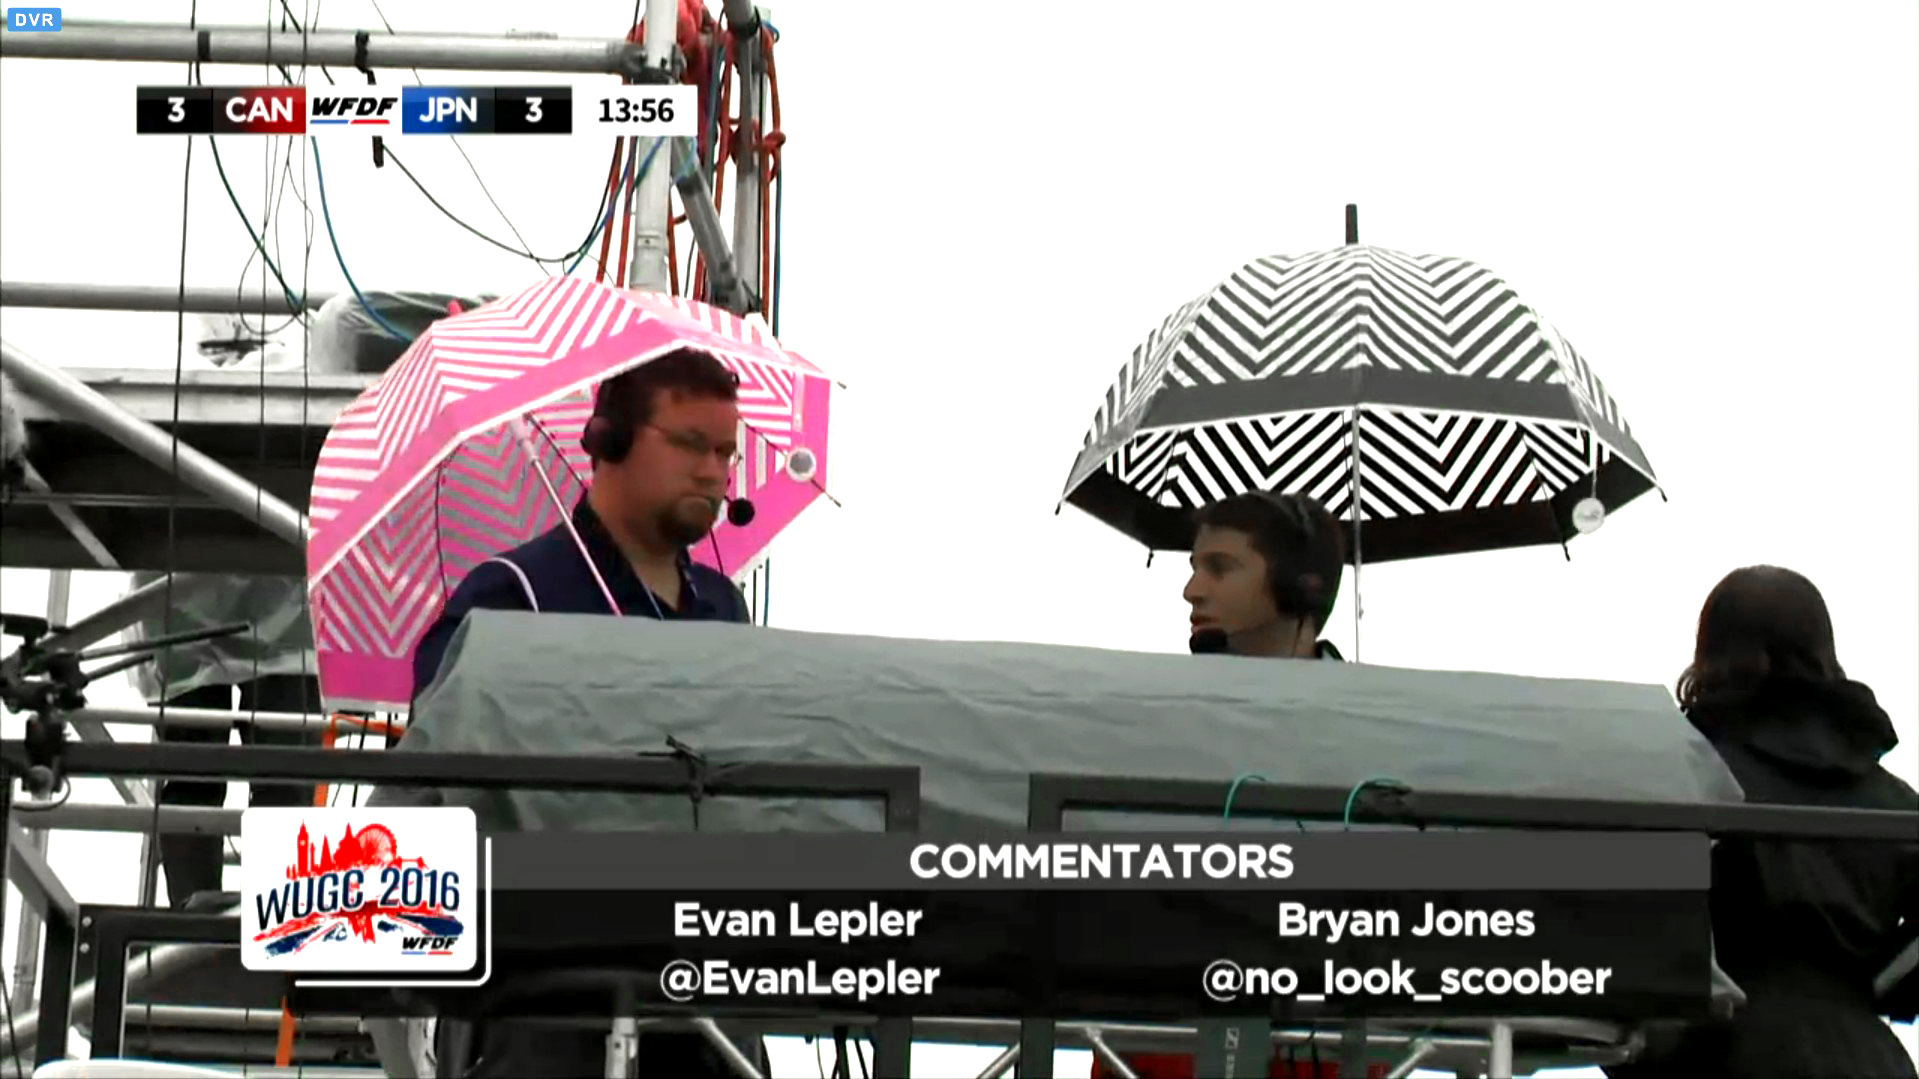 Evan (right) and fellow commentator brave the London rain at WUGC 2016